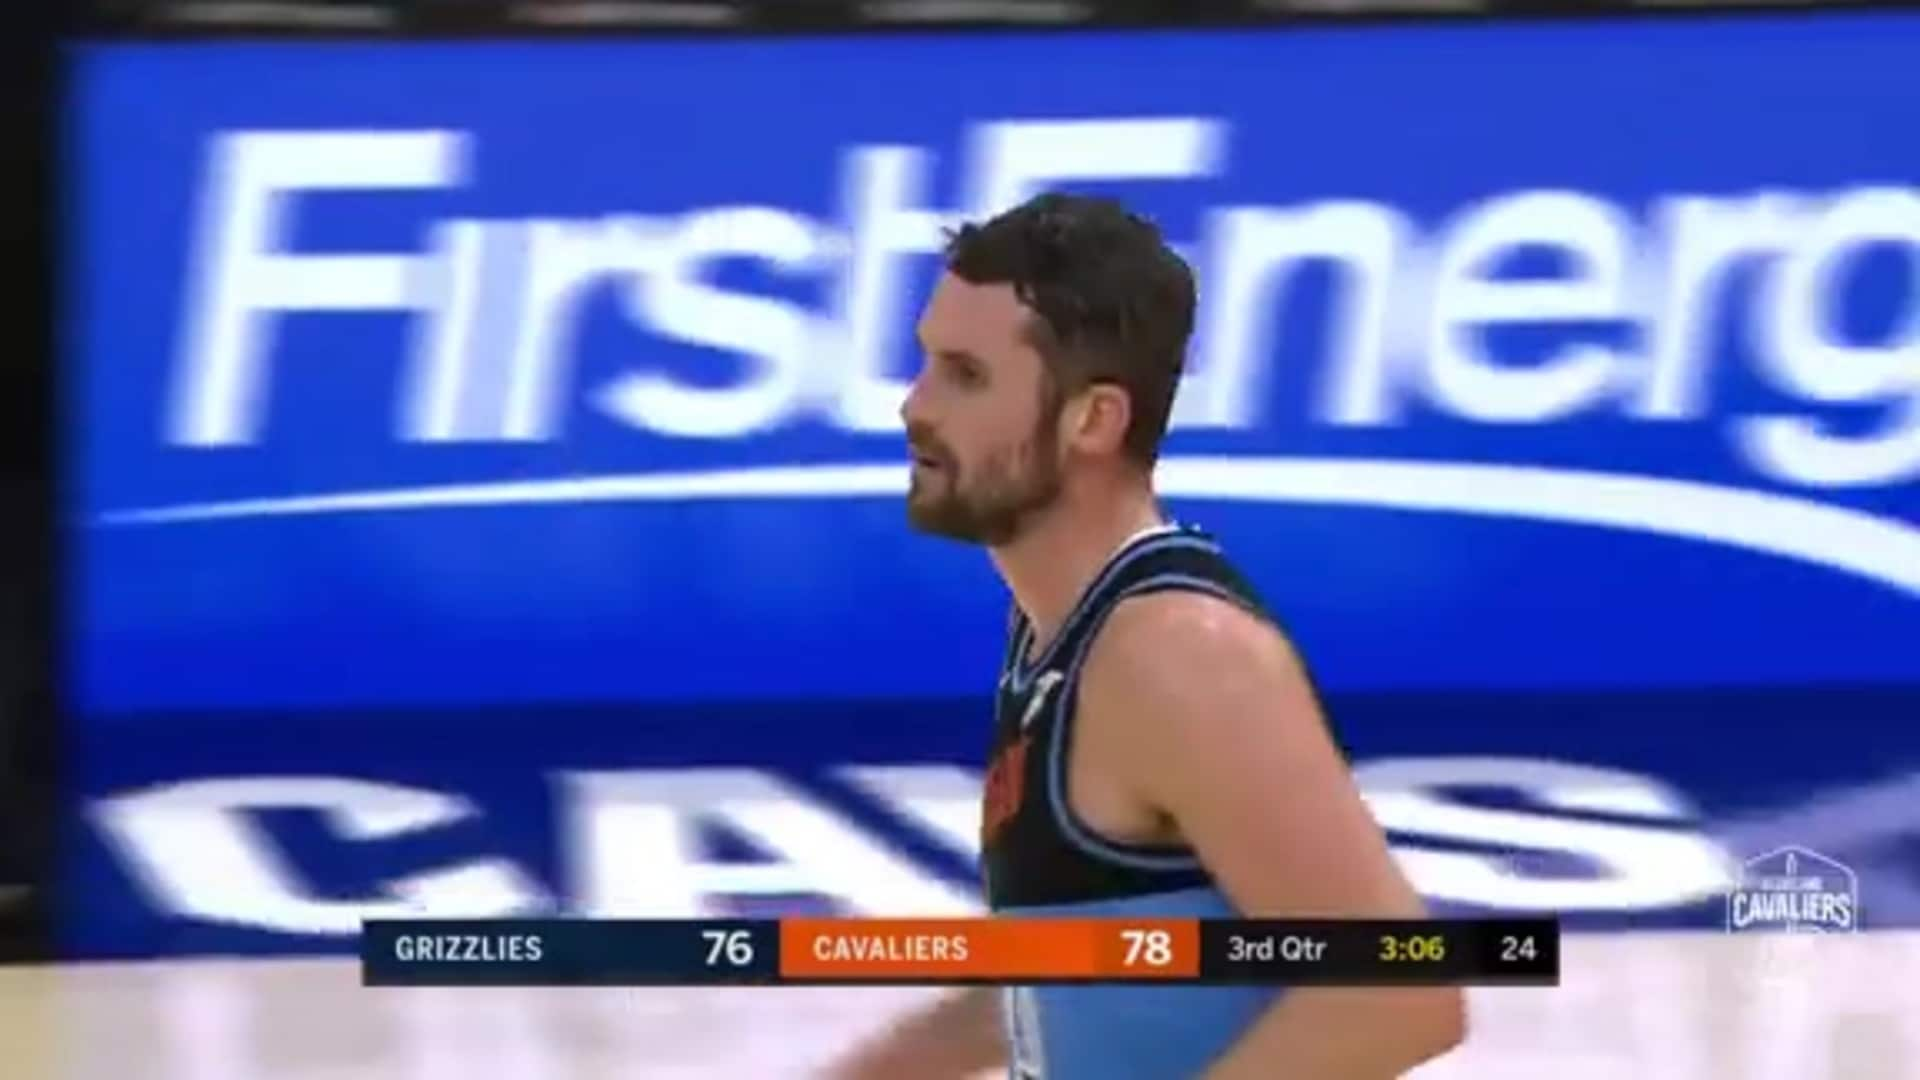 Delly Finds KLove for His Eighth Assist